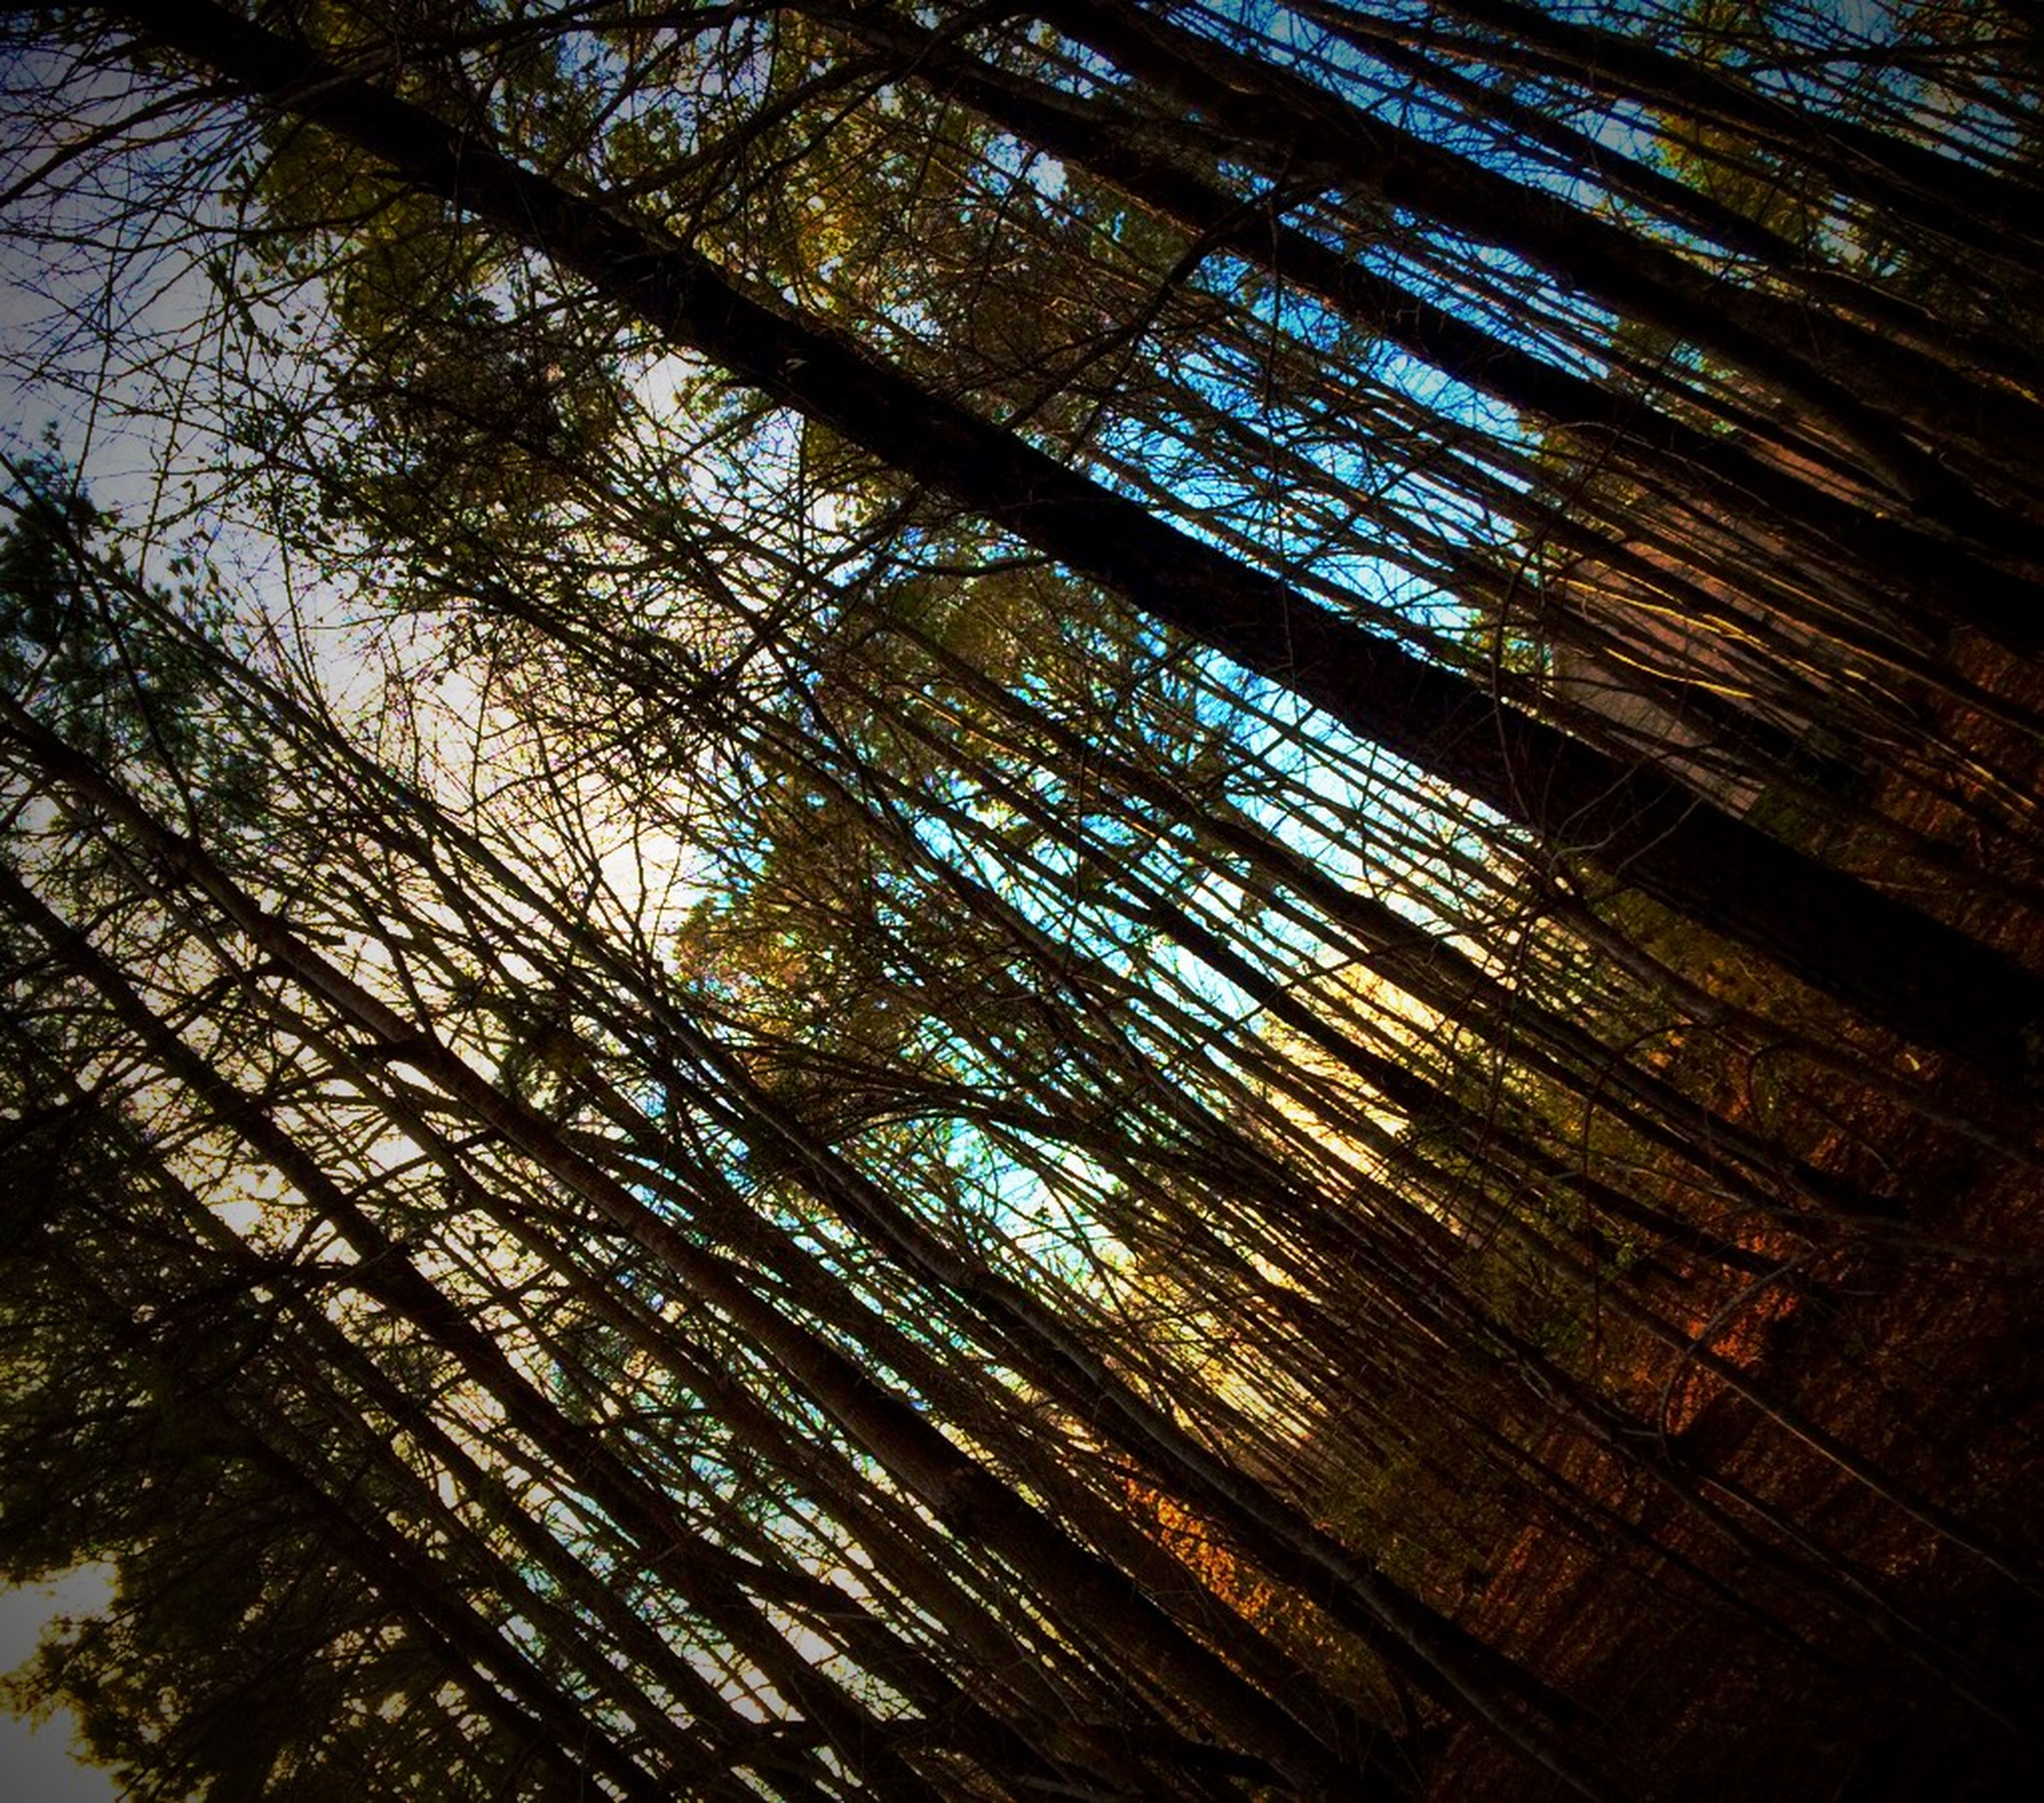 tree, tree trunk, forest, woodland, low angle view, growth, tranquility, wood - material, nature, branch, full frame, backgrounds, beauty in nature, day, tall - high, outdoors, no people, tranquil scene, pattern, scenics